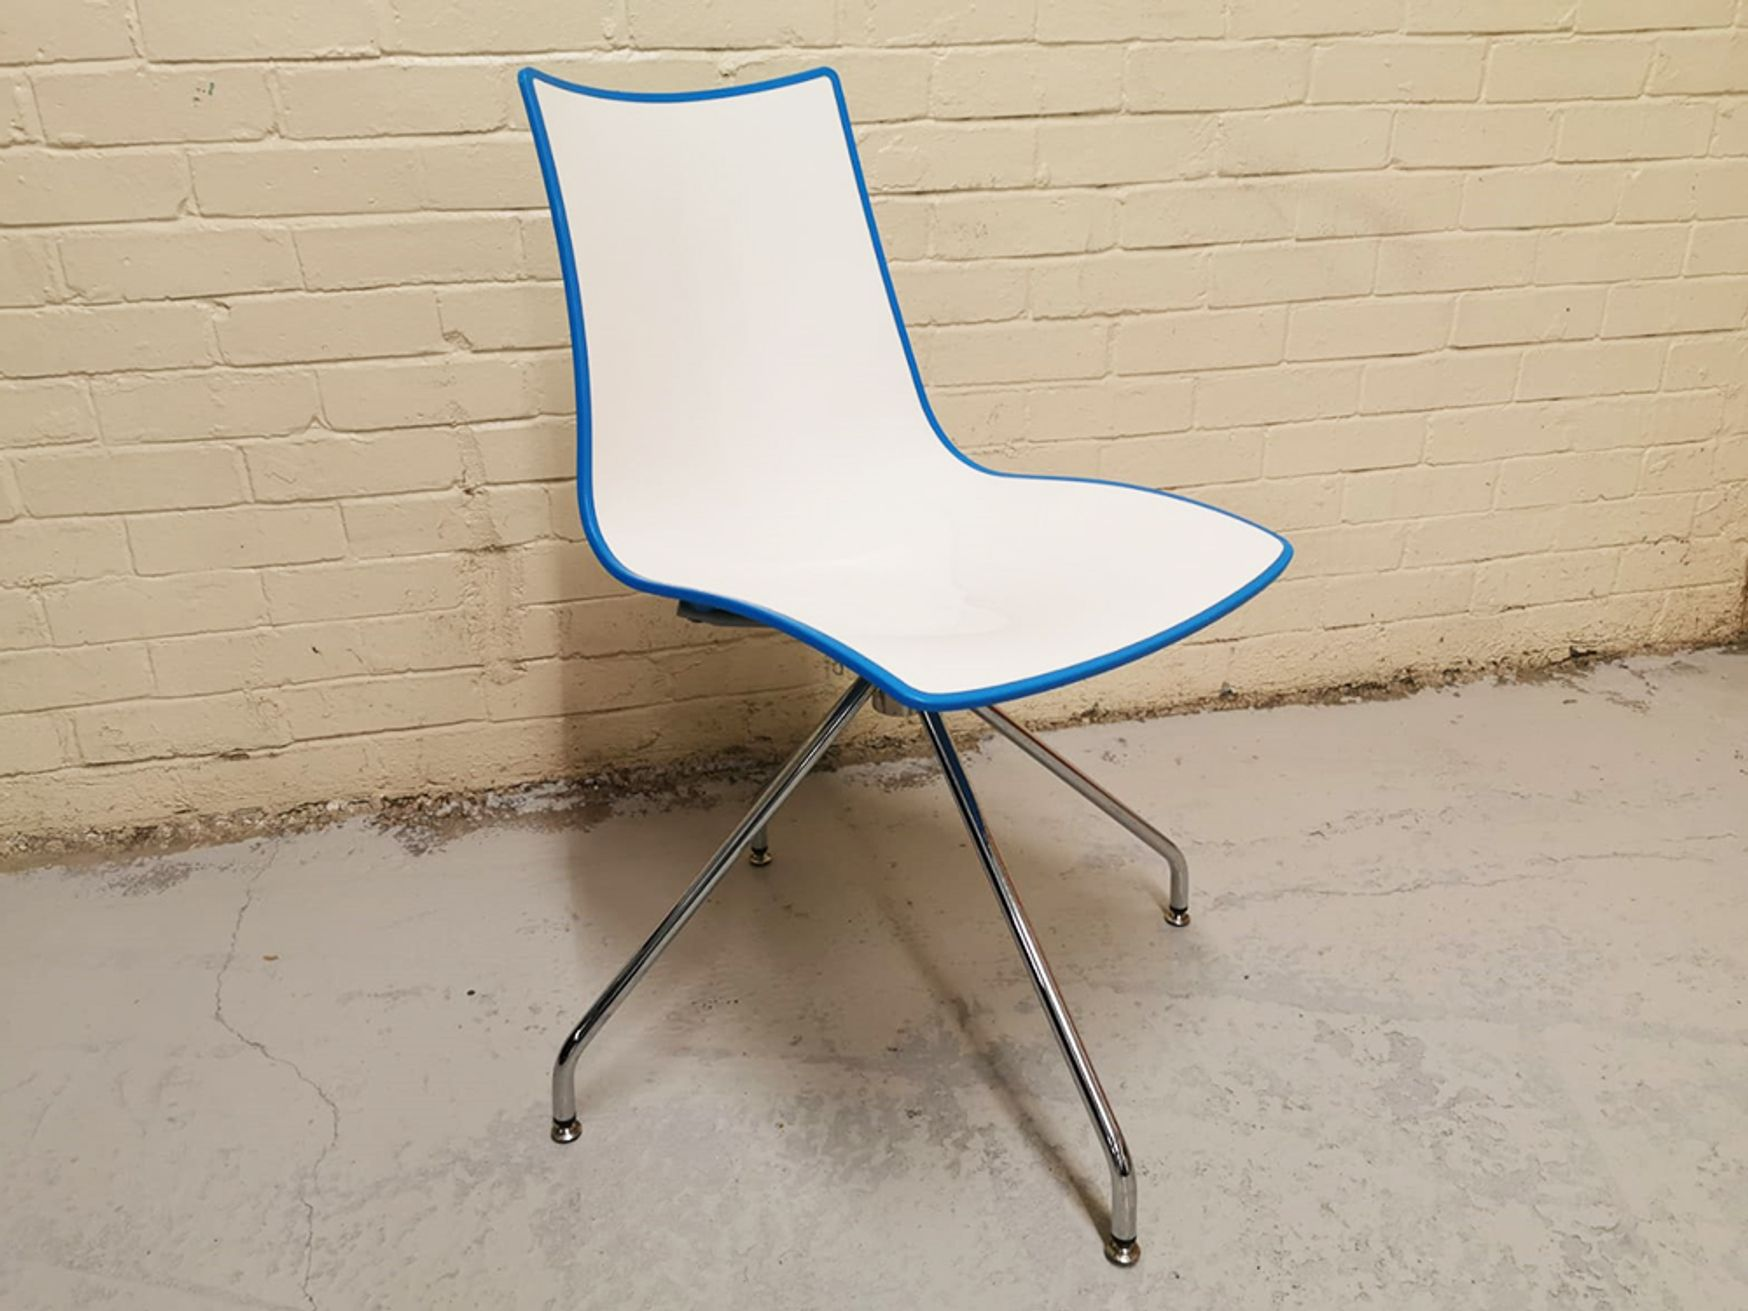 Used Cafe Chairs in White and Blue with Chrome Frame